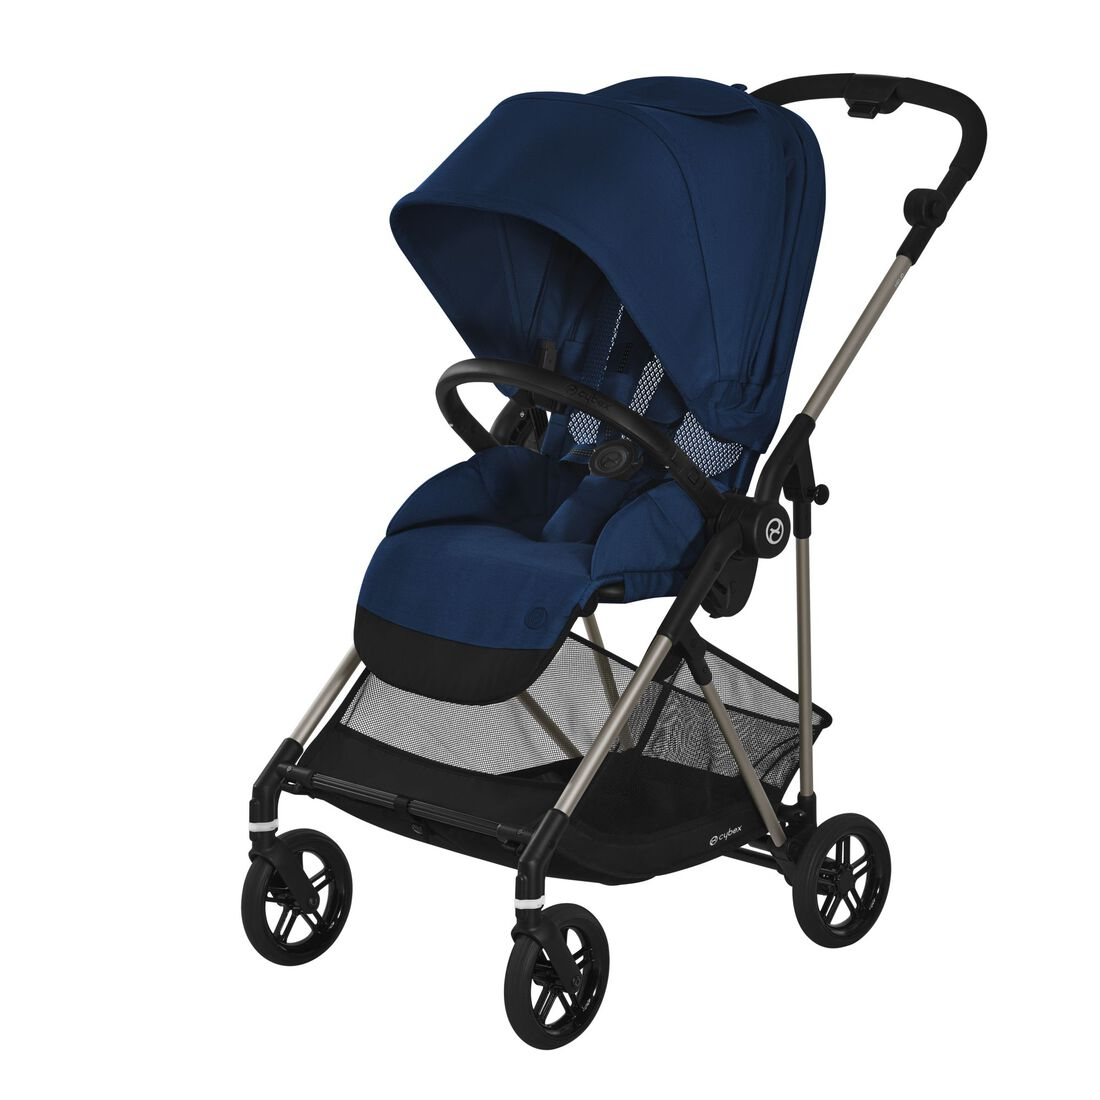 CYBEX Melio - Navy Blue in Navy Blue large Bild 1